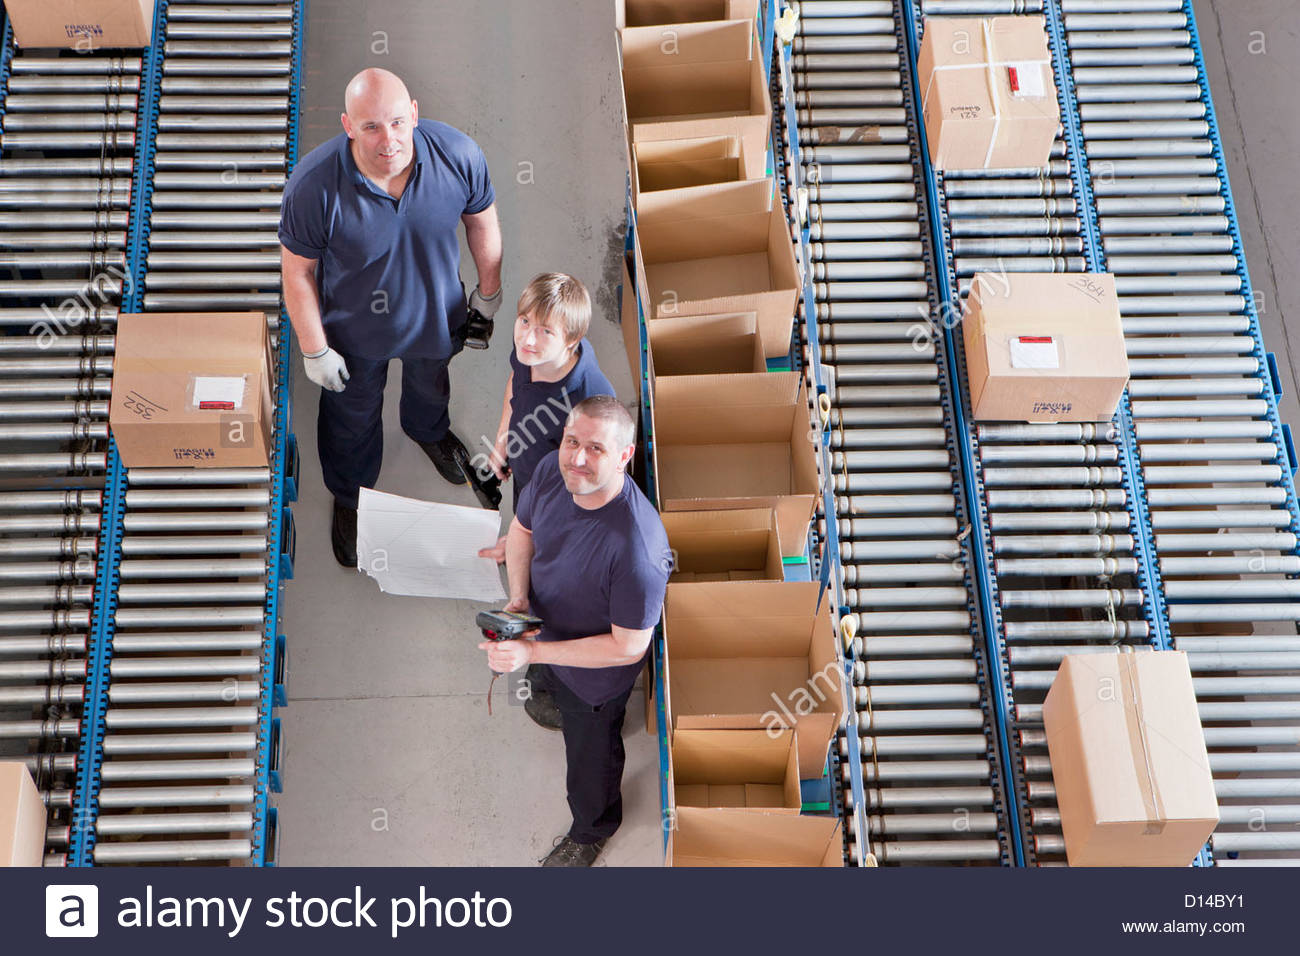 Portrait of workers packing boxes on conveyor belts in distribution warehouse - Stock Image